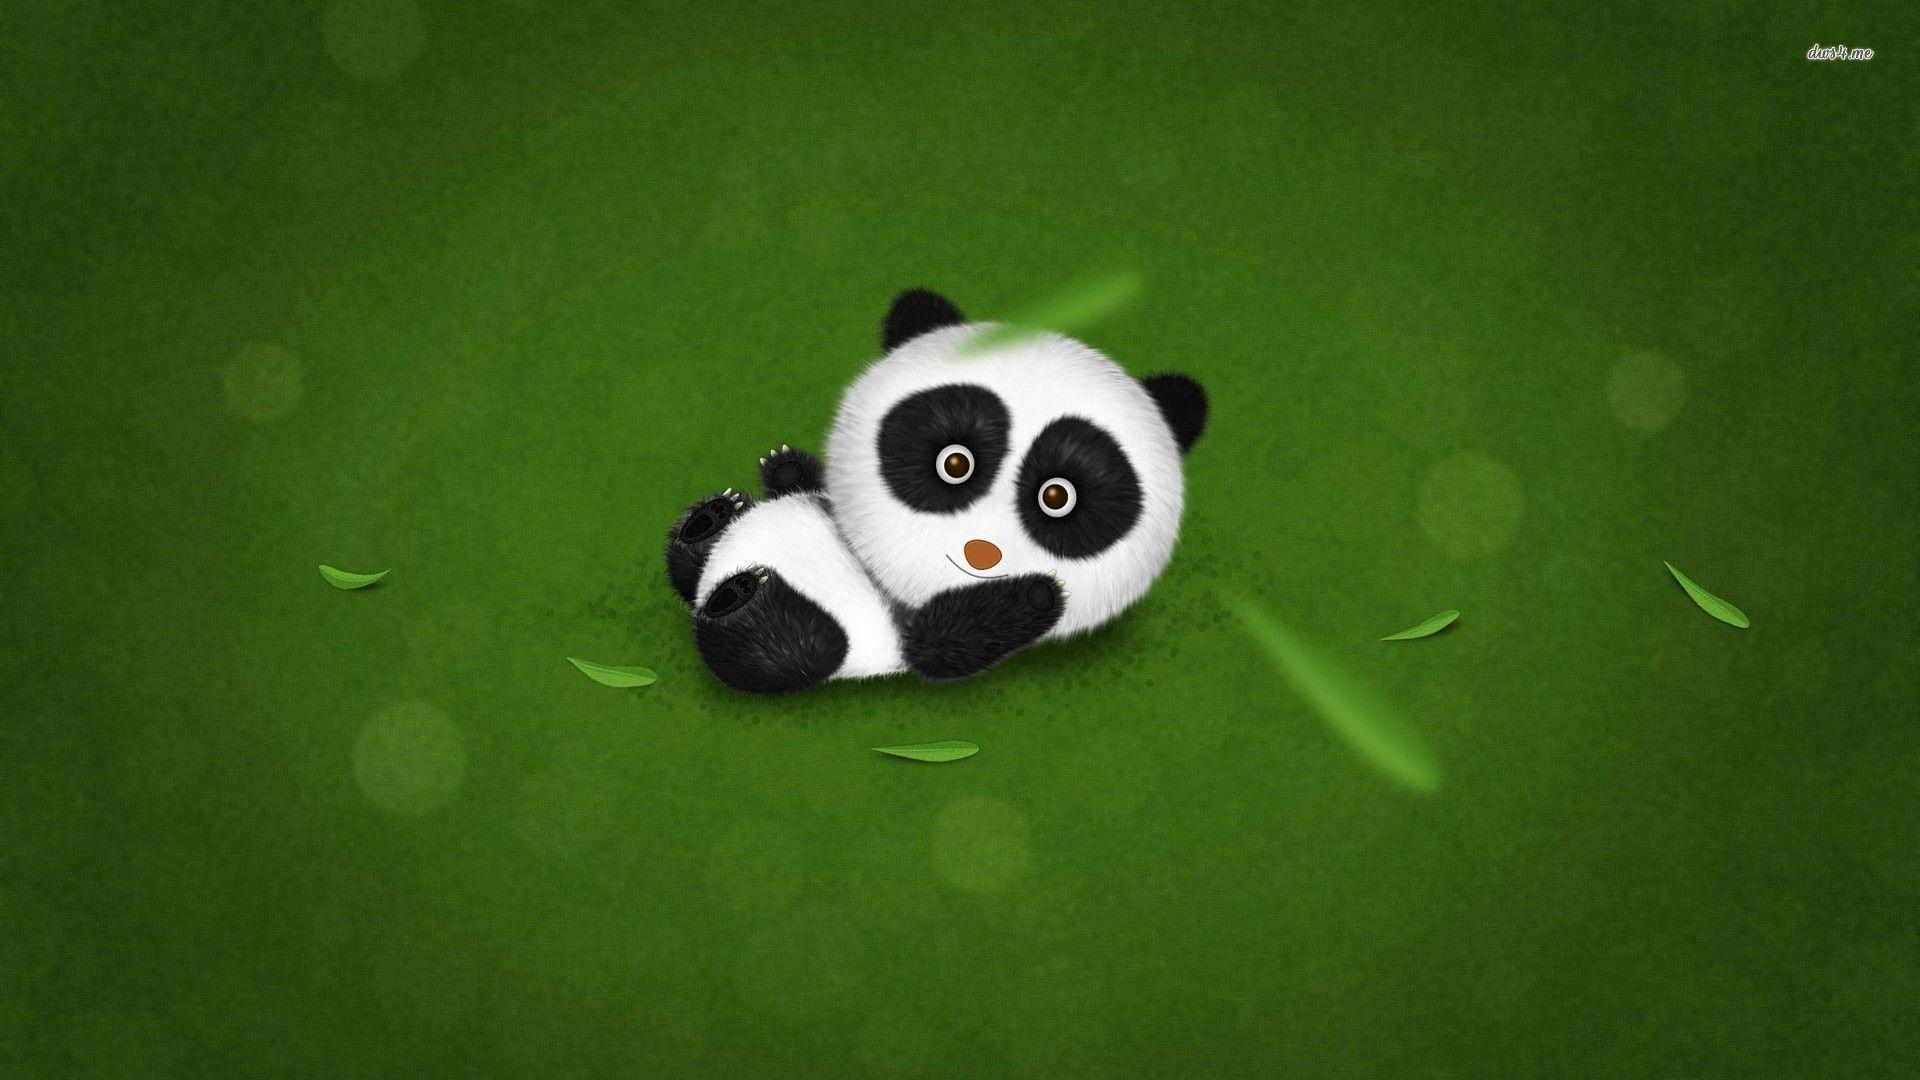 background wallpaper panda - photo #10